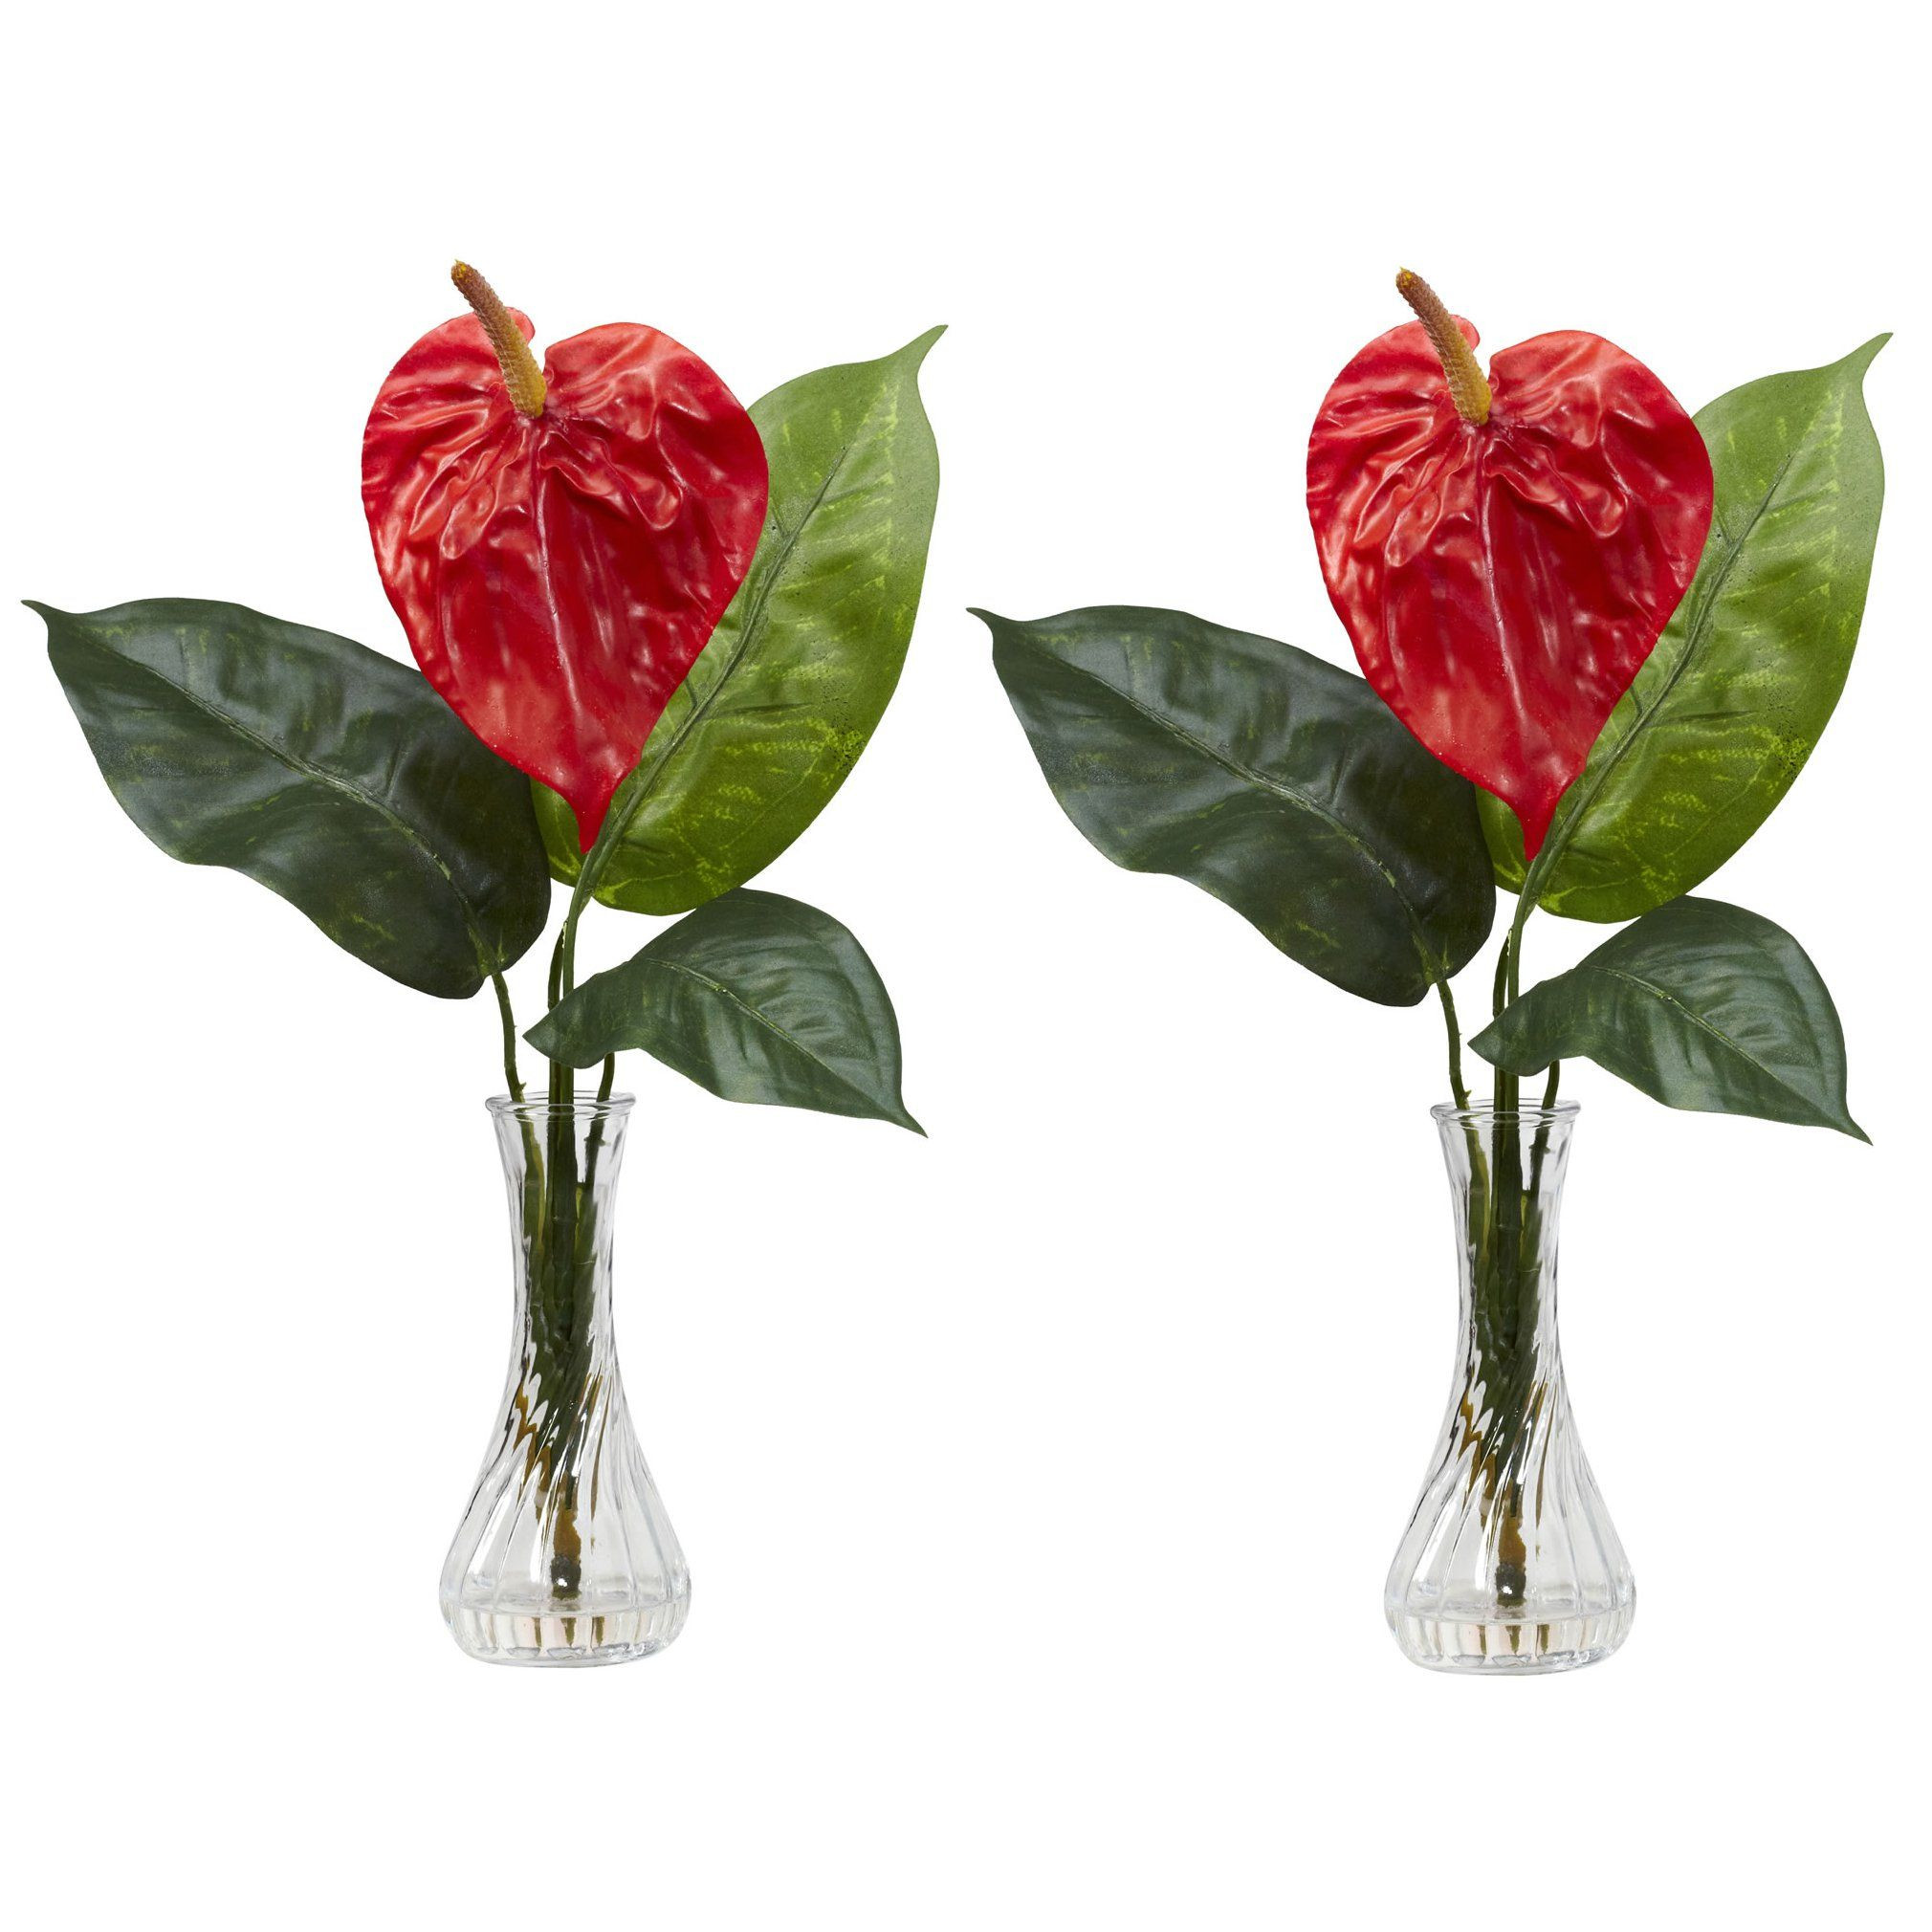 glass bud vase set of clear bud vases awesome silk flowers for bud vases flowers healthy throughout clear bud vases awesome silk flowers for bud vases flowers healthy